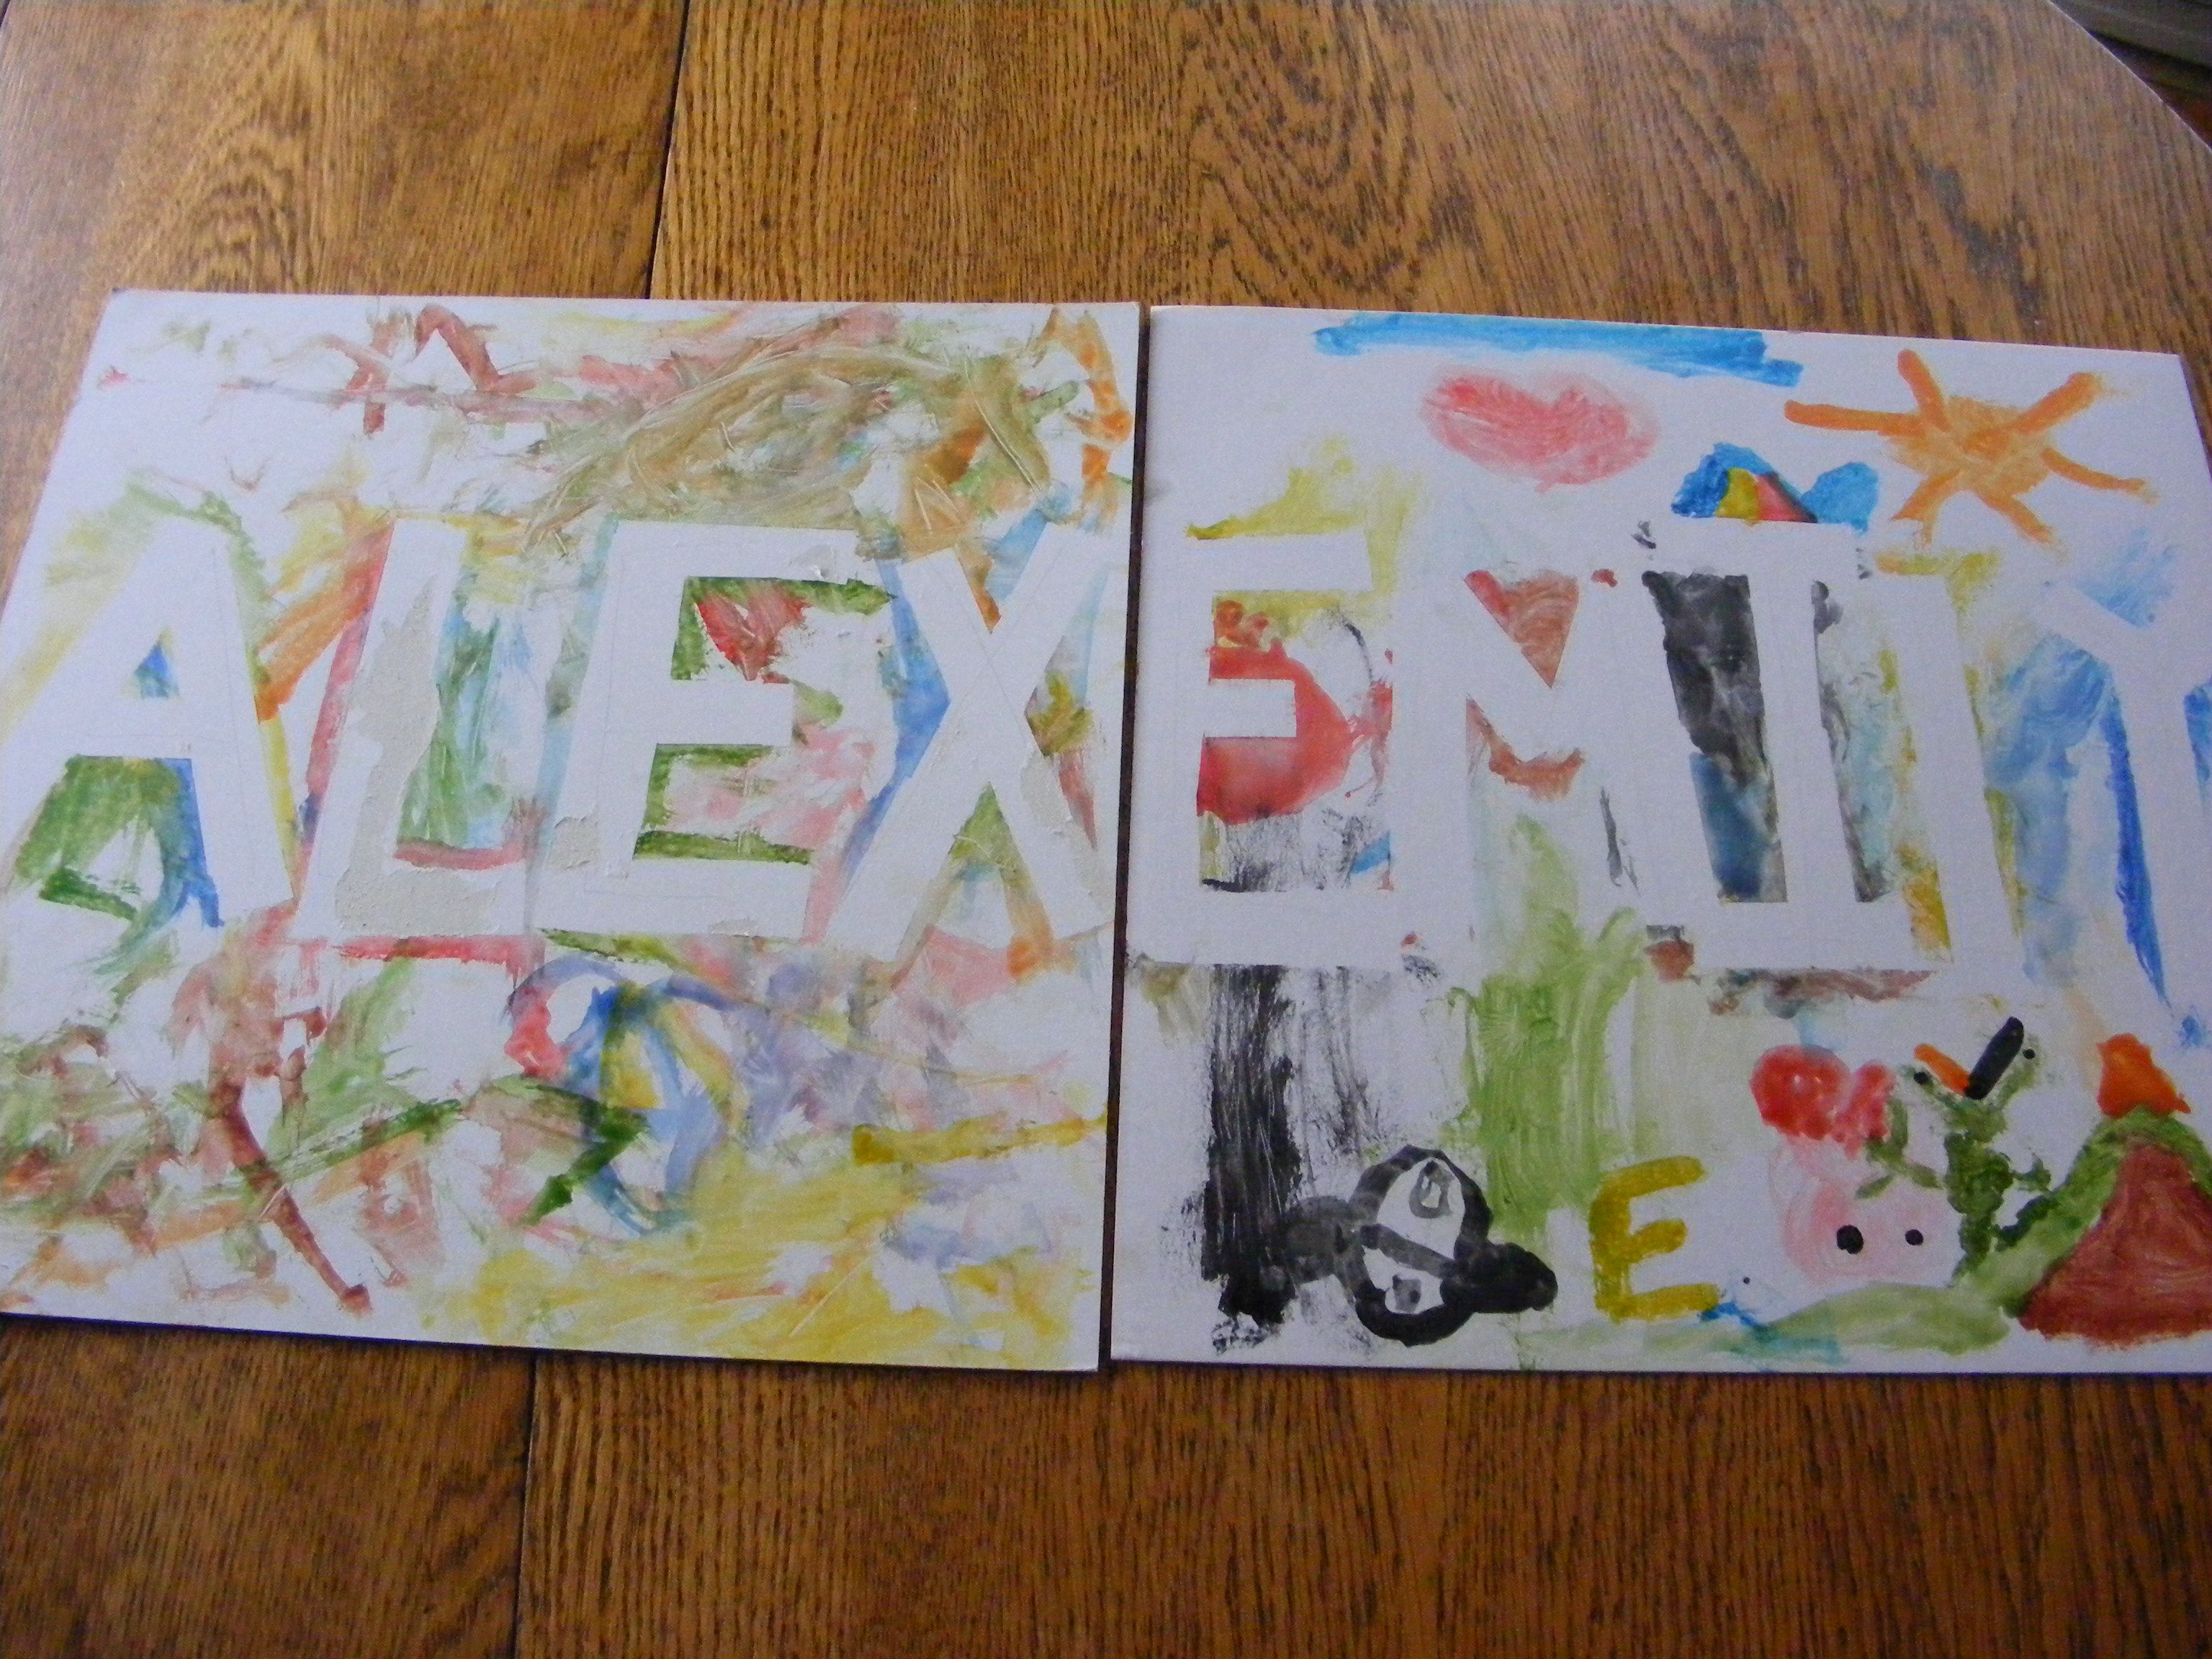 Tape Of The Child S Name With Painters Tape We Used Water Colors But You Can Use Fingerpaint We Also Used White Cardboard Instead Of Paper To Make It Knutselen